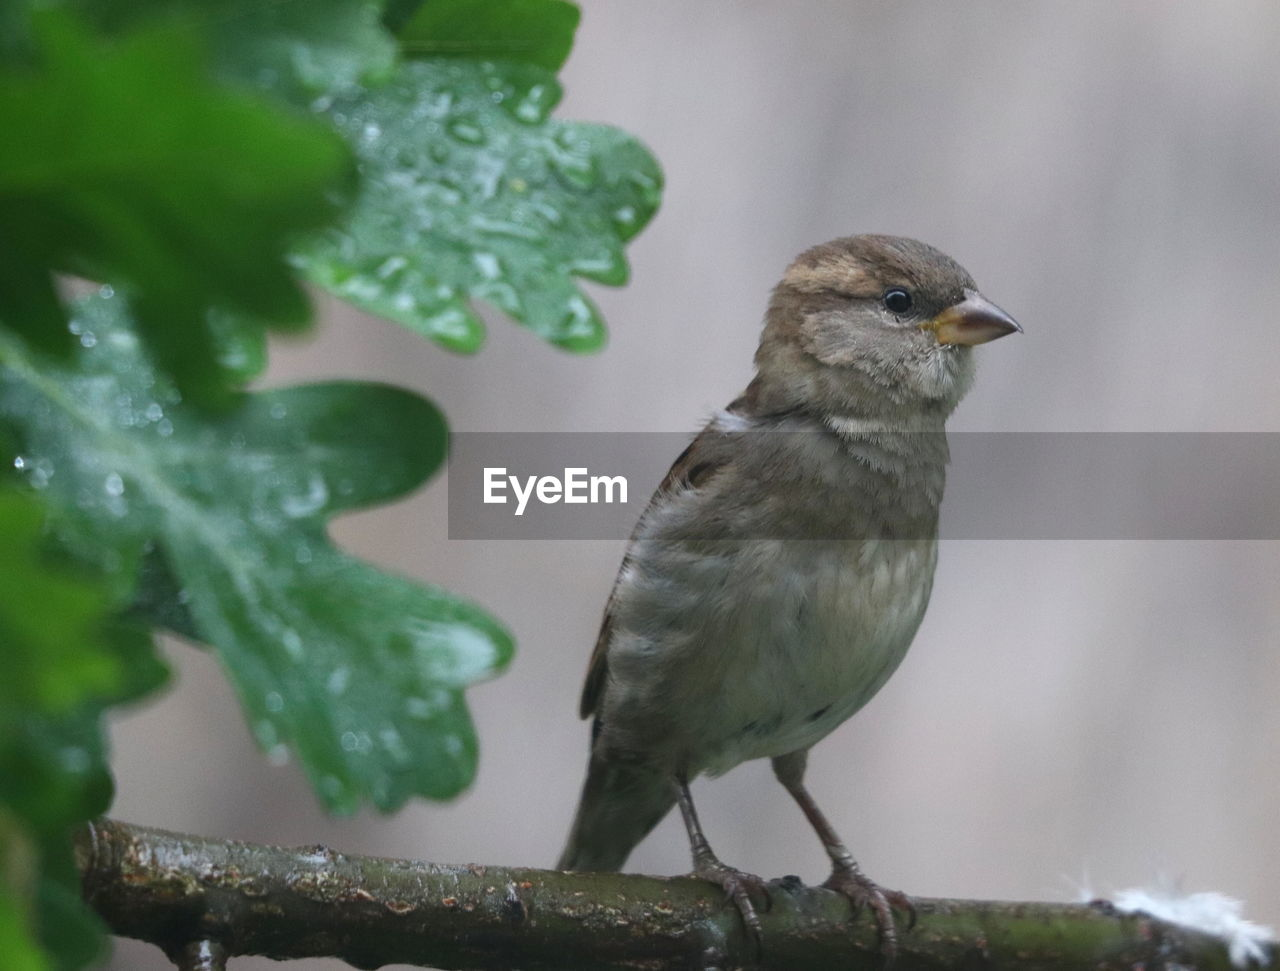 bird, vertebrate, animal, animal themes, animal wildlife, one animal, animals in the wild, perching, focus on foreground, close-up, no people, green color, day, nature, sparrow, branch, plant, outdoors, beauty in nature, leaf